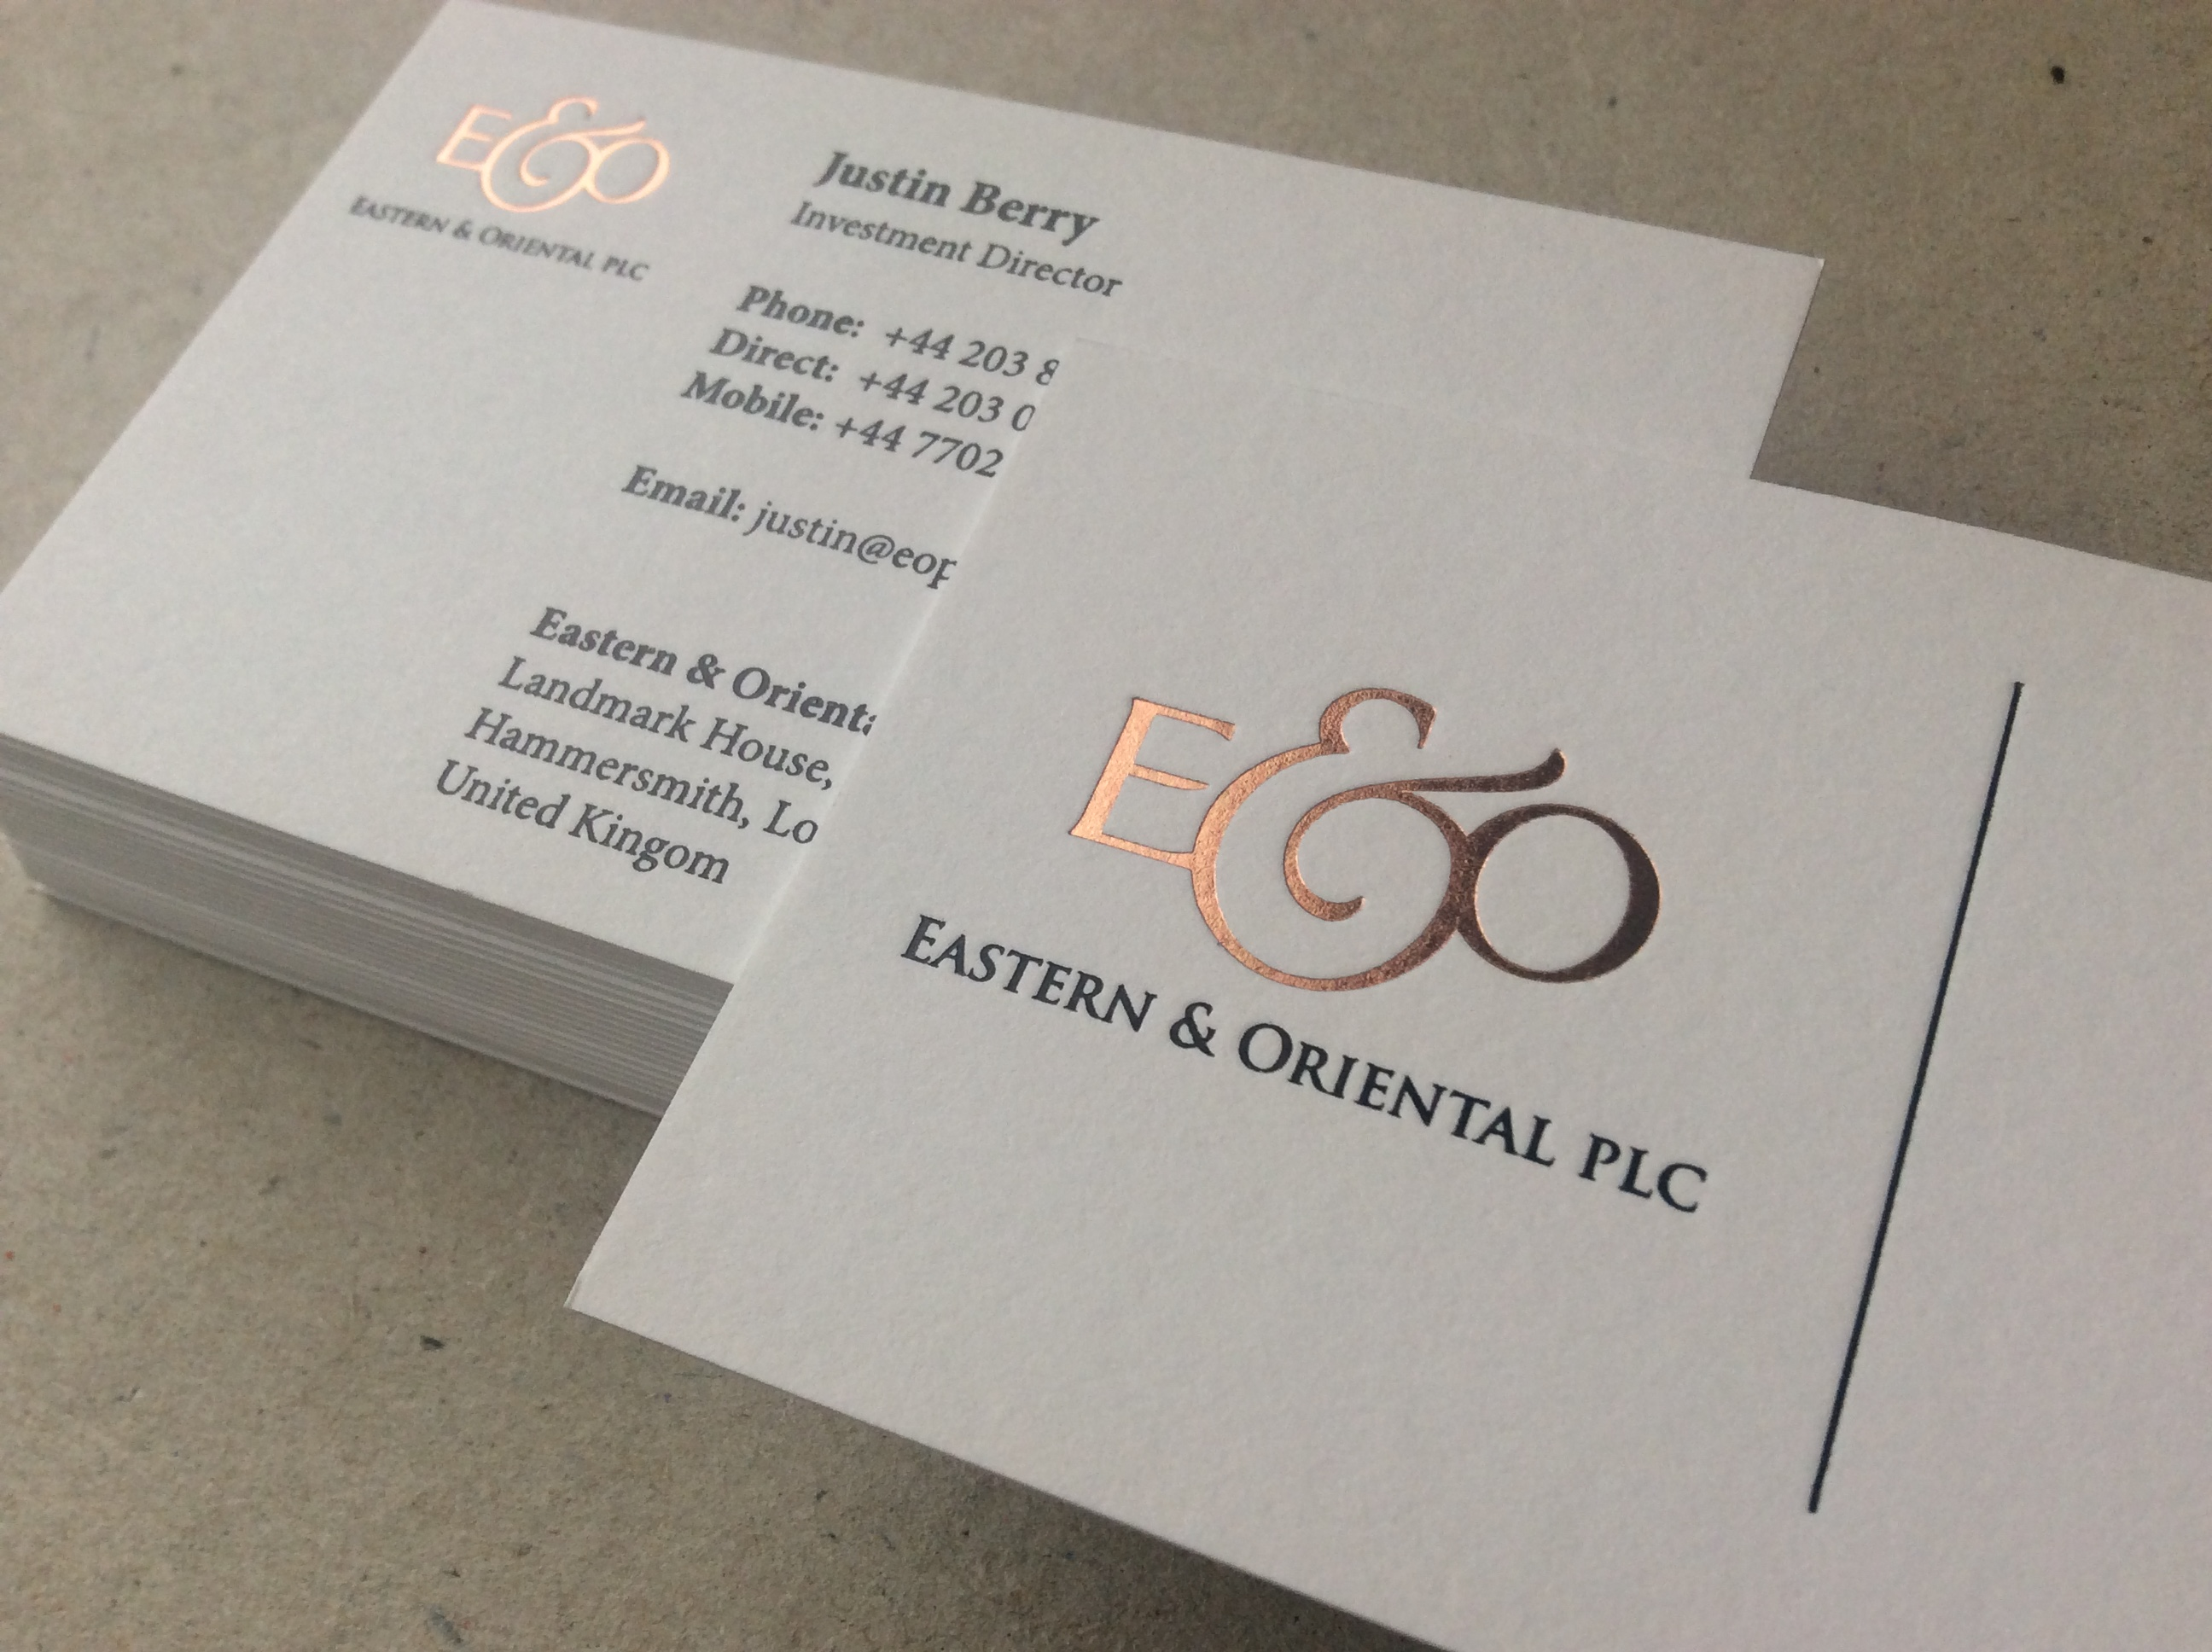 Quality Professional Business Cards UBC